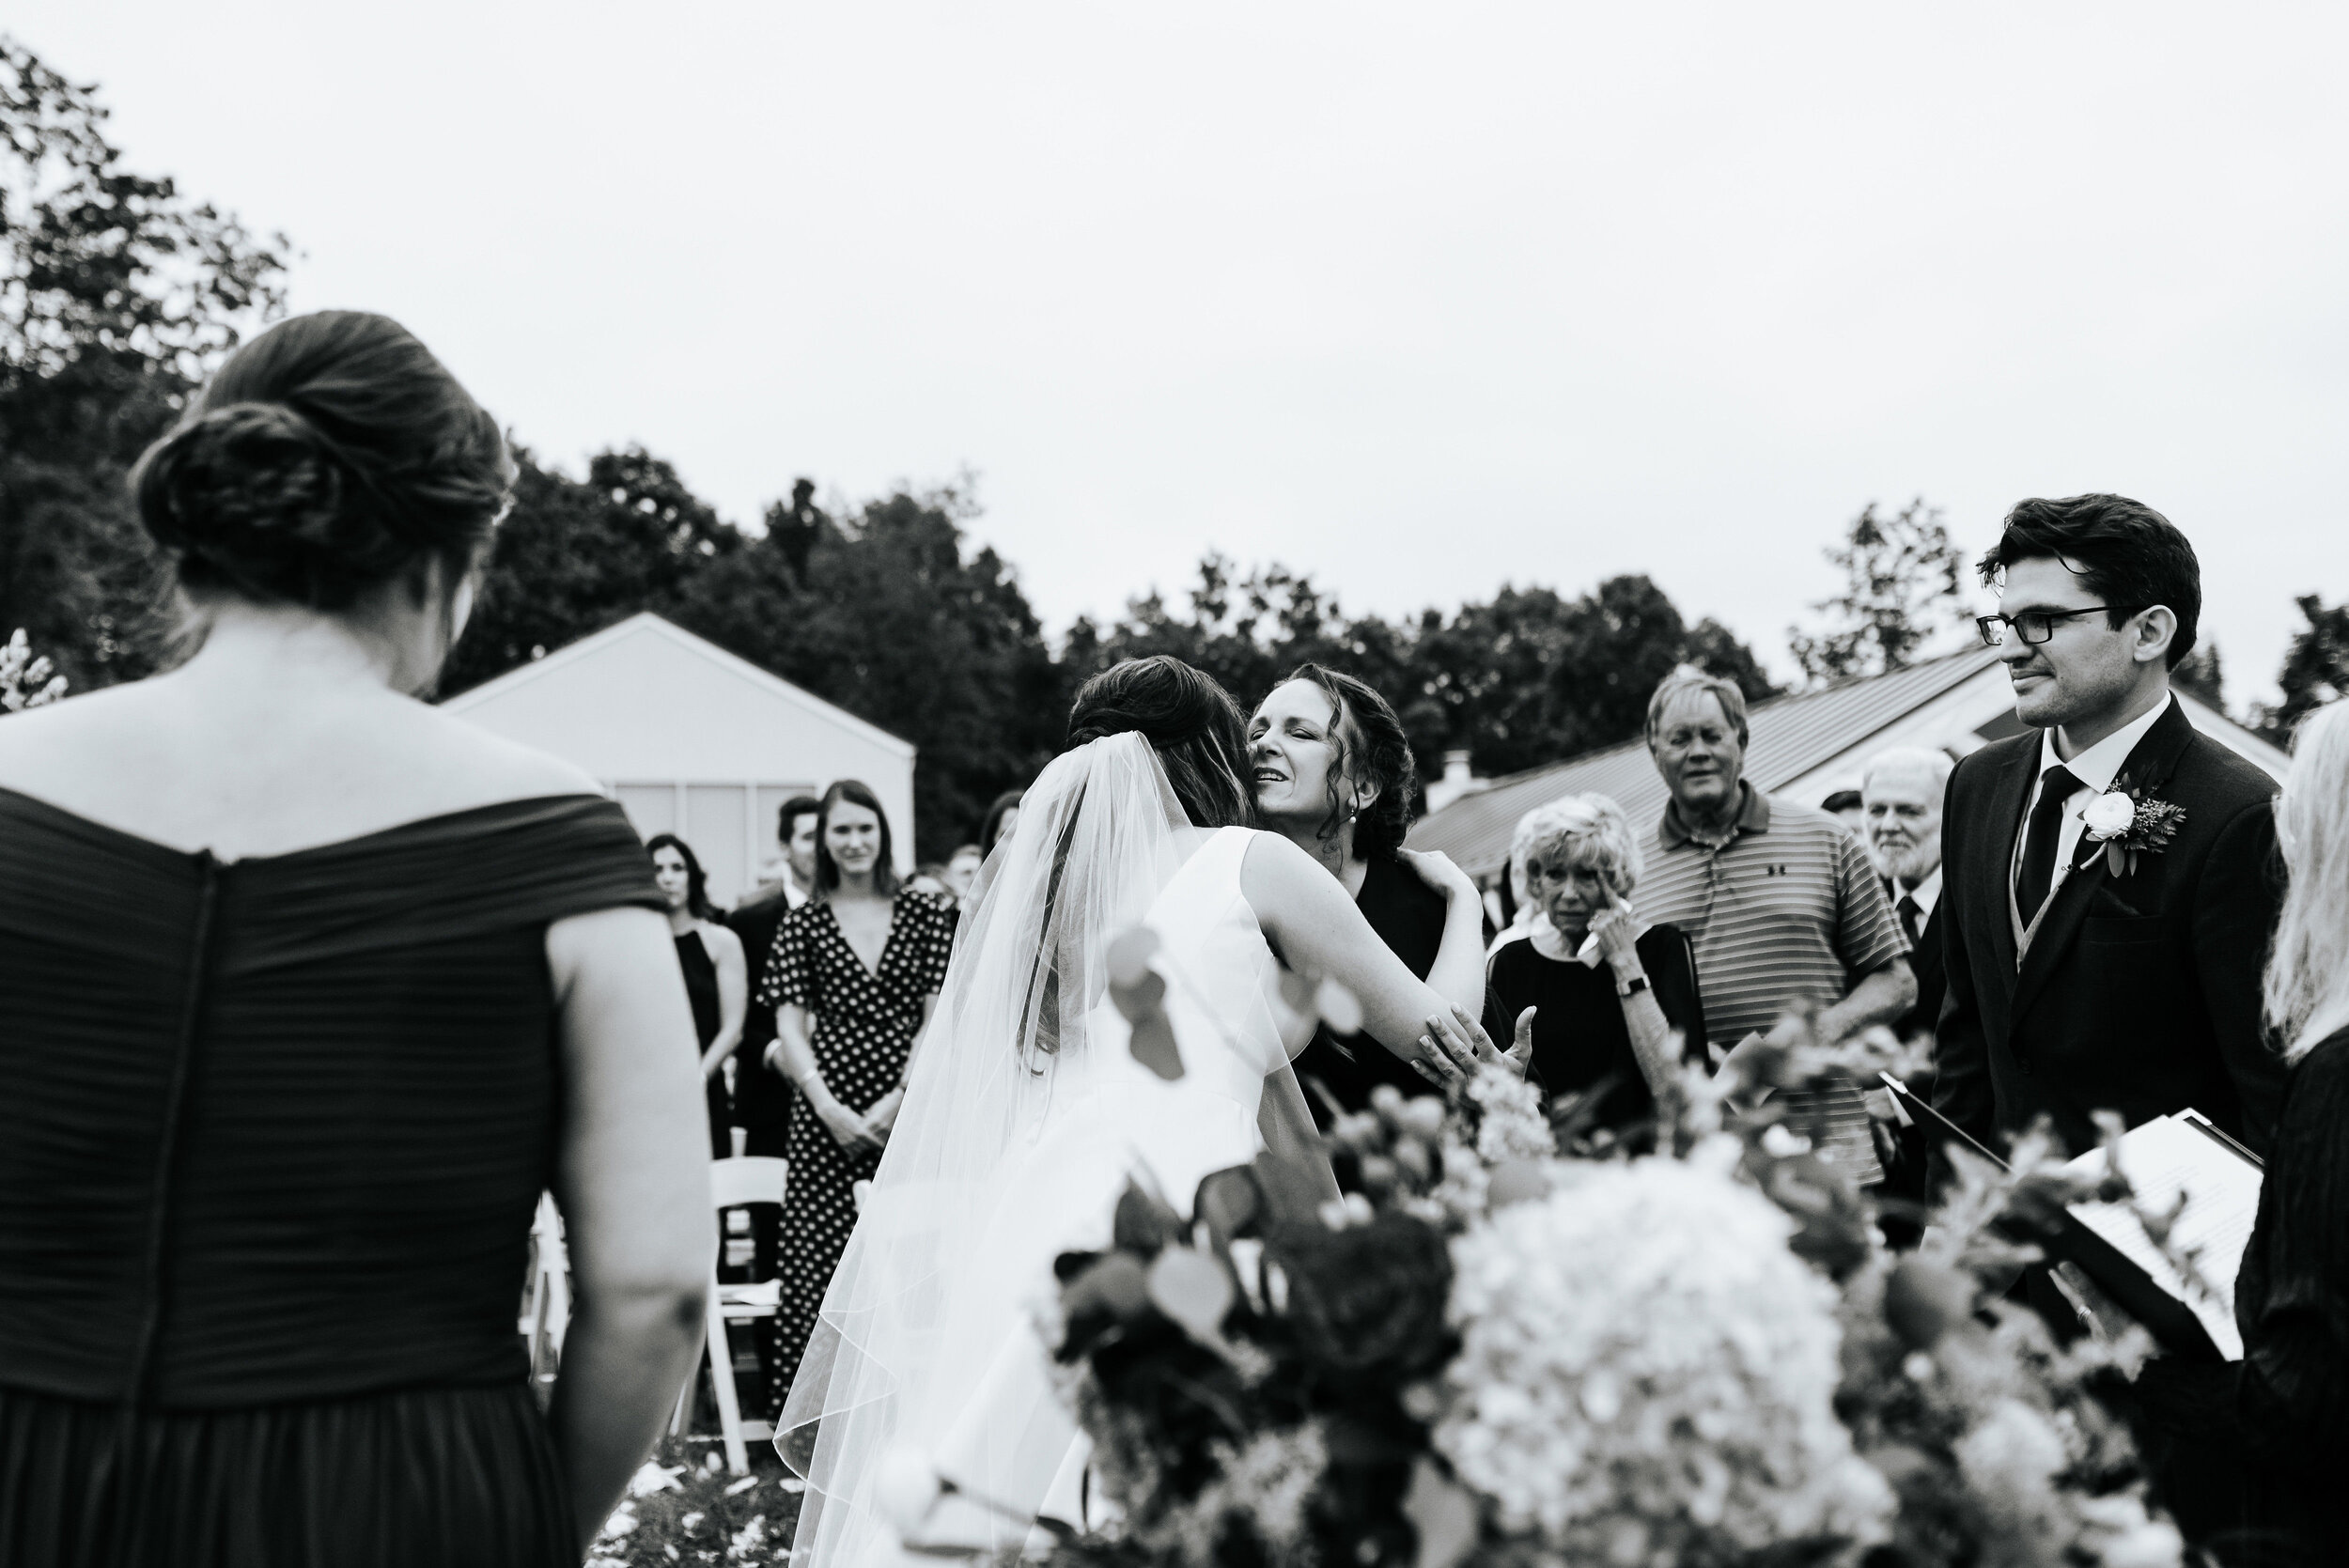 Allison_Nolan_Moss_Vineyards_Wedding_Charlottesville_Virginia_Photography_by_V_44.jpg